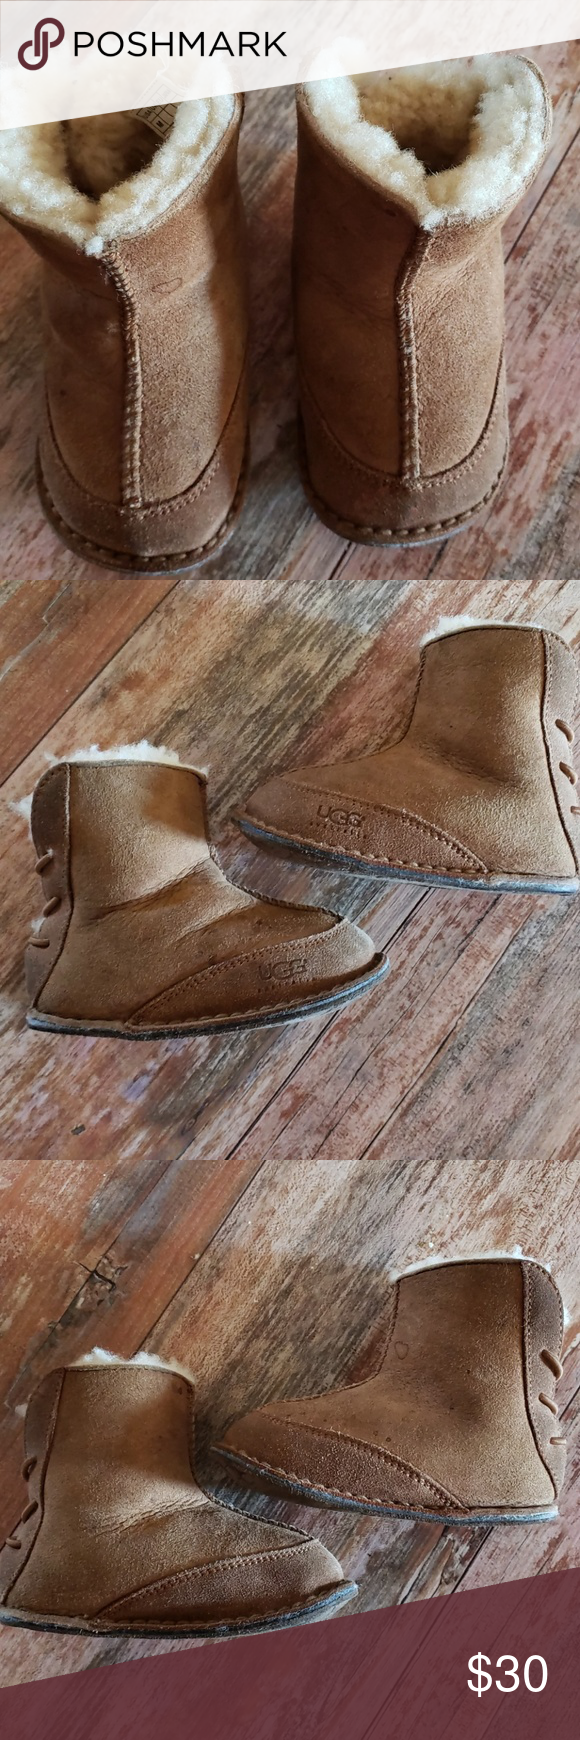 0c09df0d018 Toddler uggs size 5/6 (medium) Very Good used condition. Toddler ...